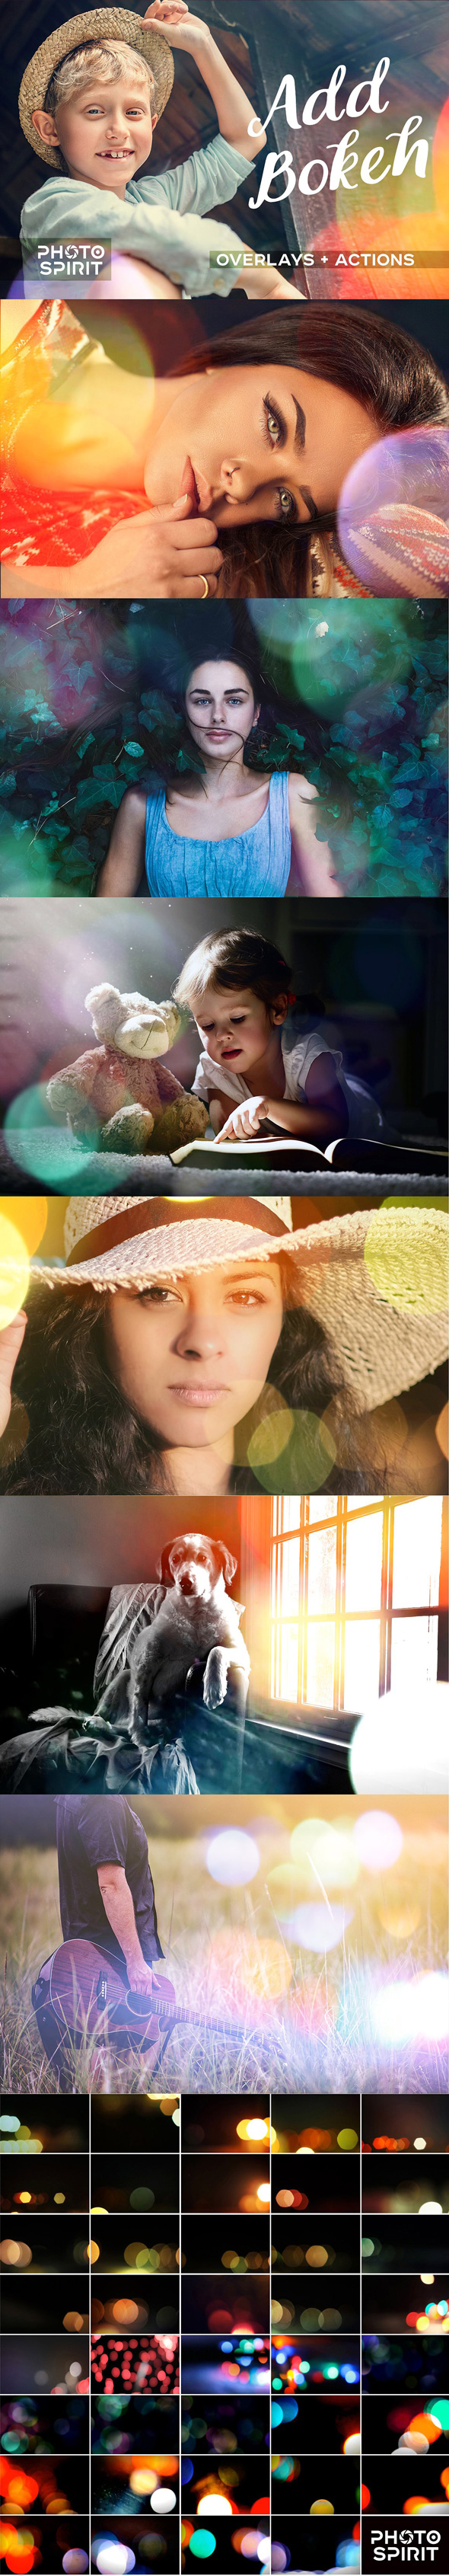 GraphicRiver Add Bokeh Overlay Photoshop Actions 21004615